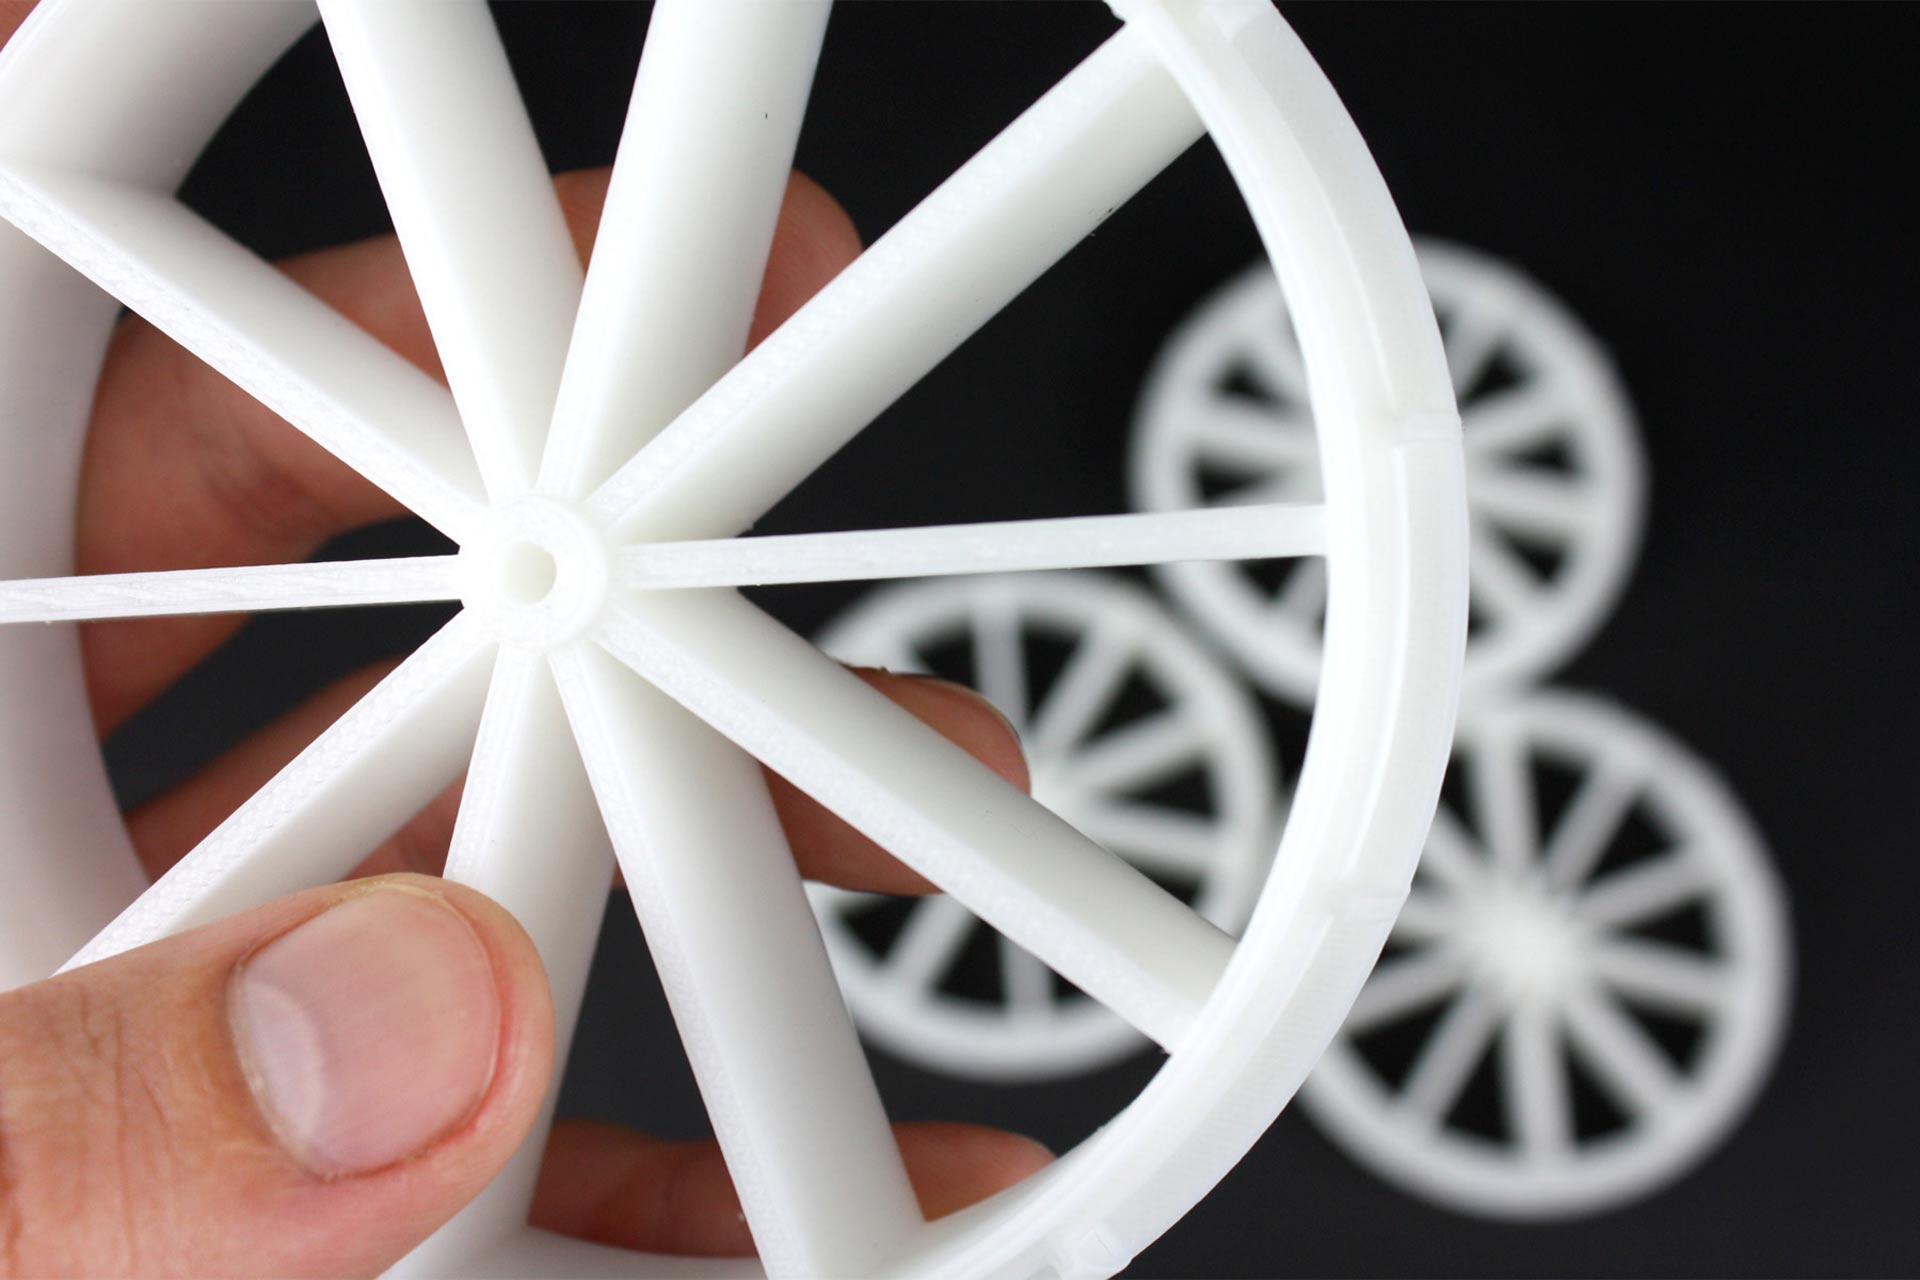 A 3D printed wheel for a kids toy